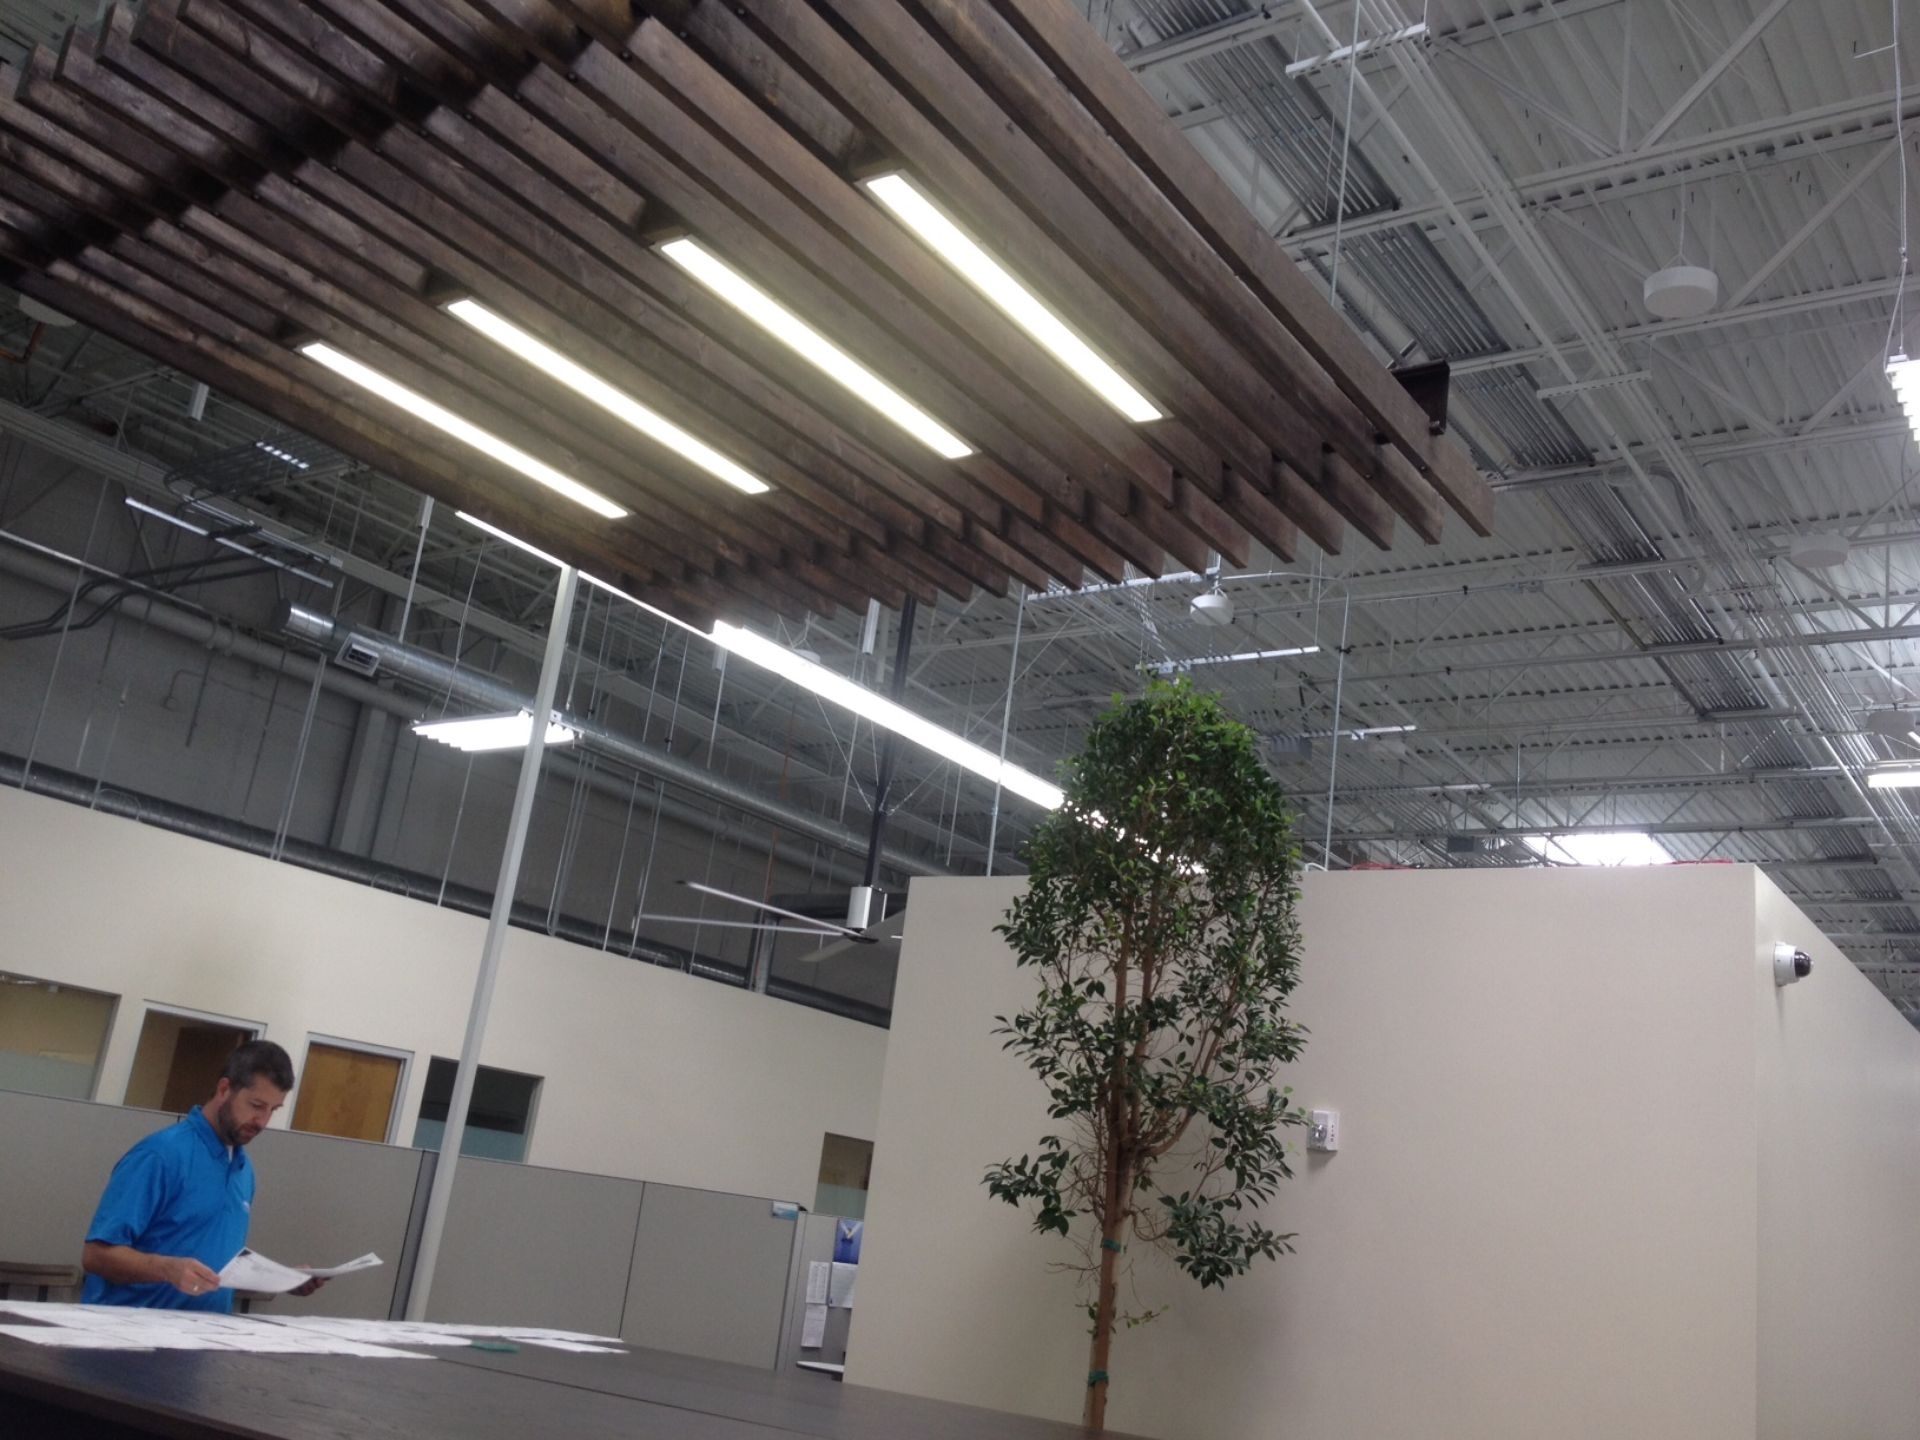 Leslie's Swimming Pool Supplies' building features community gathering spaces, such as this large table in a work neighborhood, ficus trees, high ceilings, exposed duct work, huge fans and a wooden trellis more typically seen at backyard pools. (Photo: Laurie Merrill/The Arizona Republic)